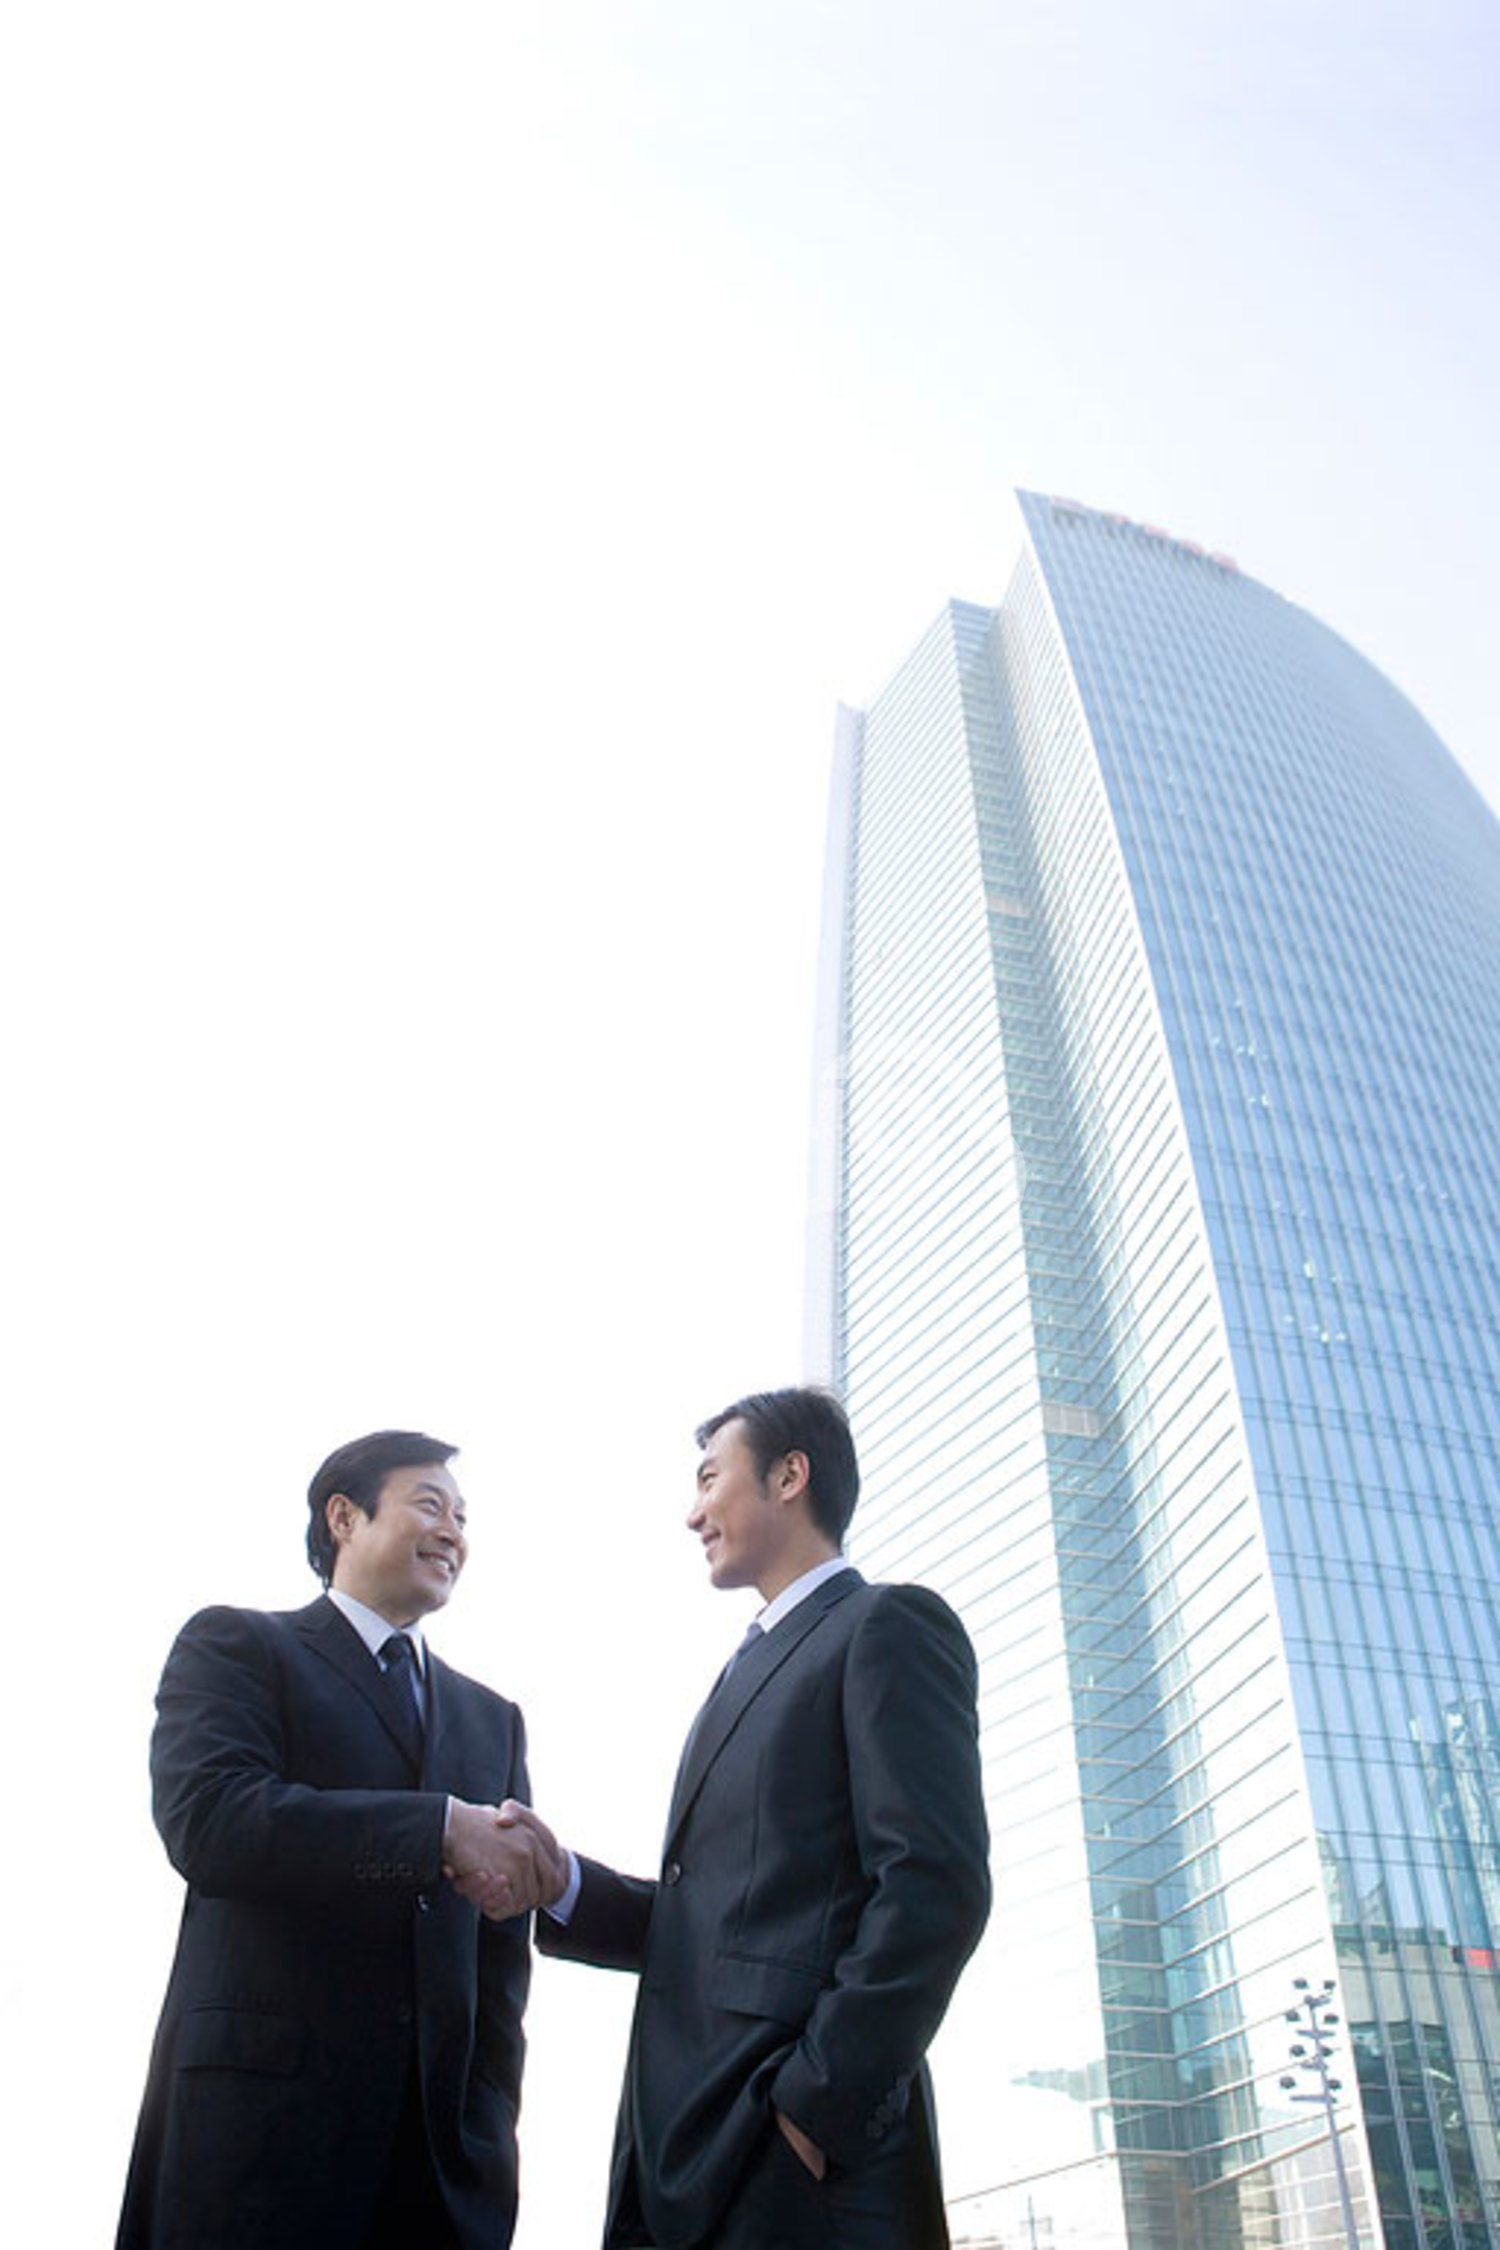 Chinese businessmen shaking hands in front of tall building